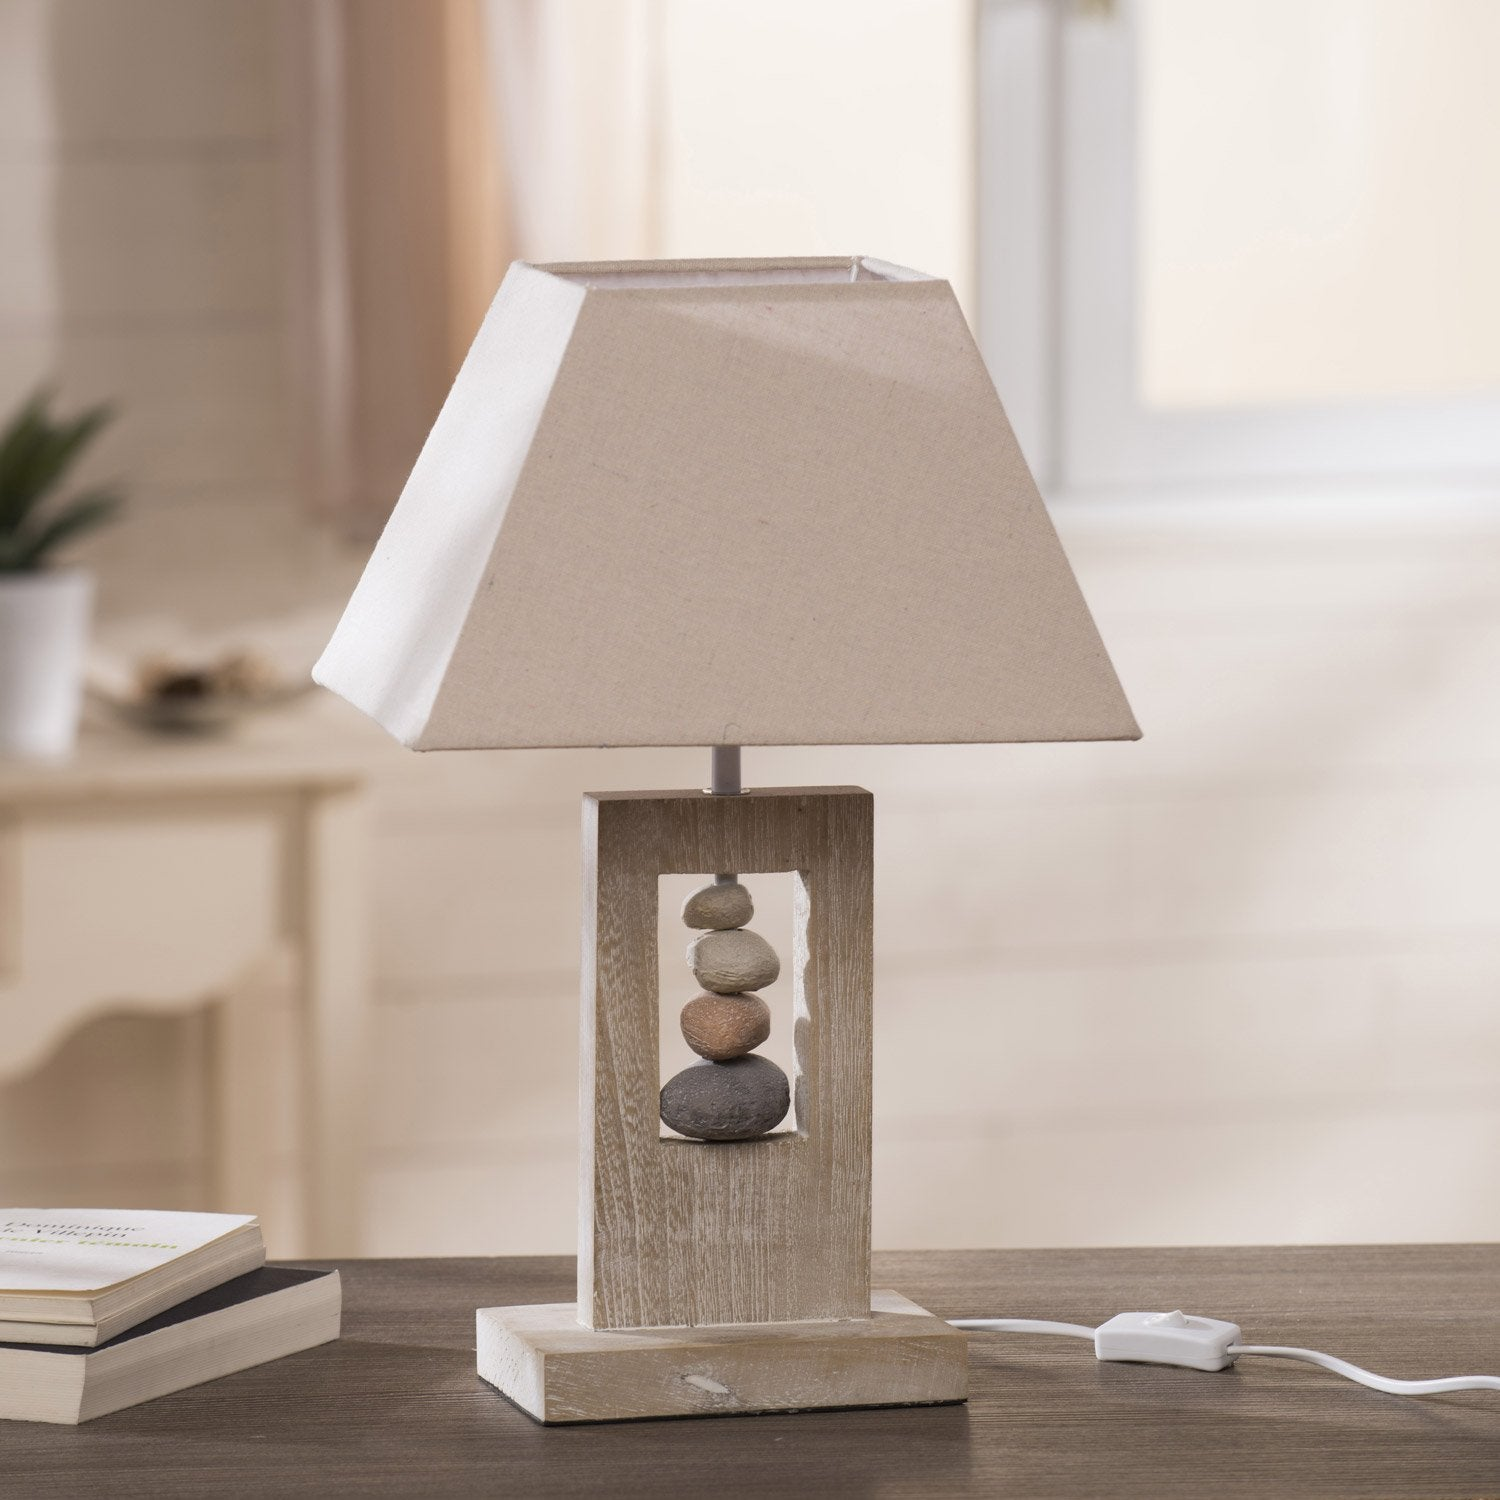 Lampe cabourg seynave tissu naturel 40 w leroy merlin - Table de chevet leroy merlin ...